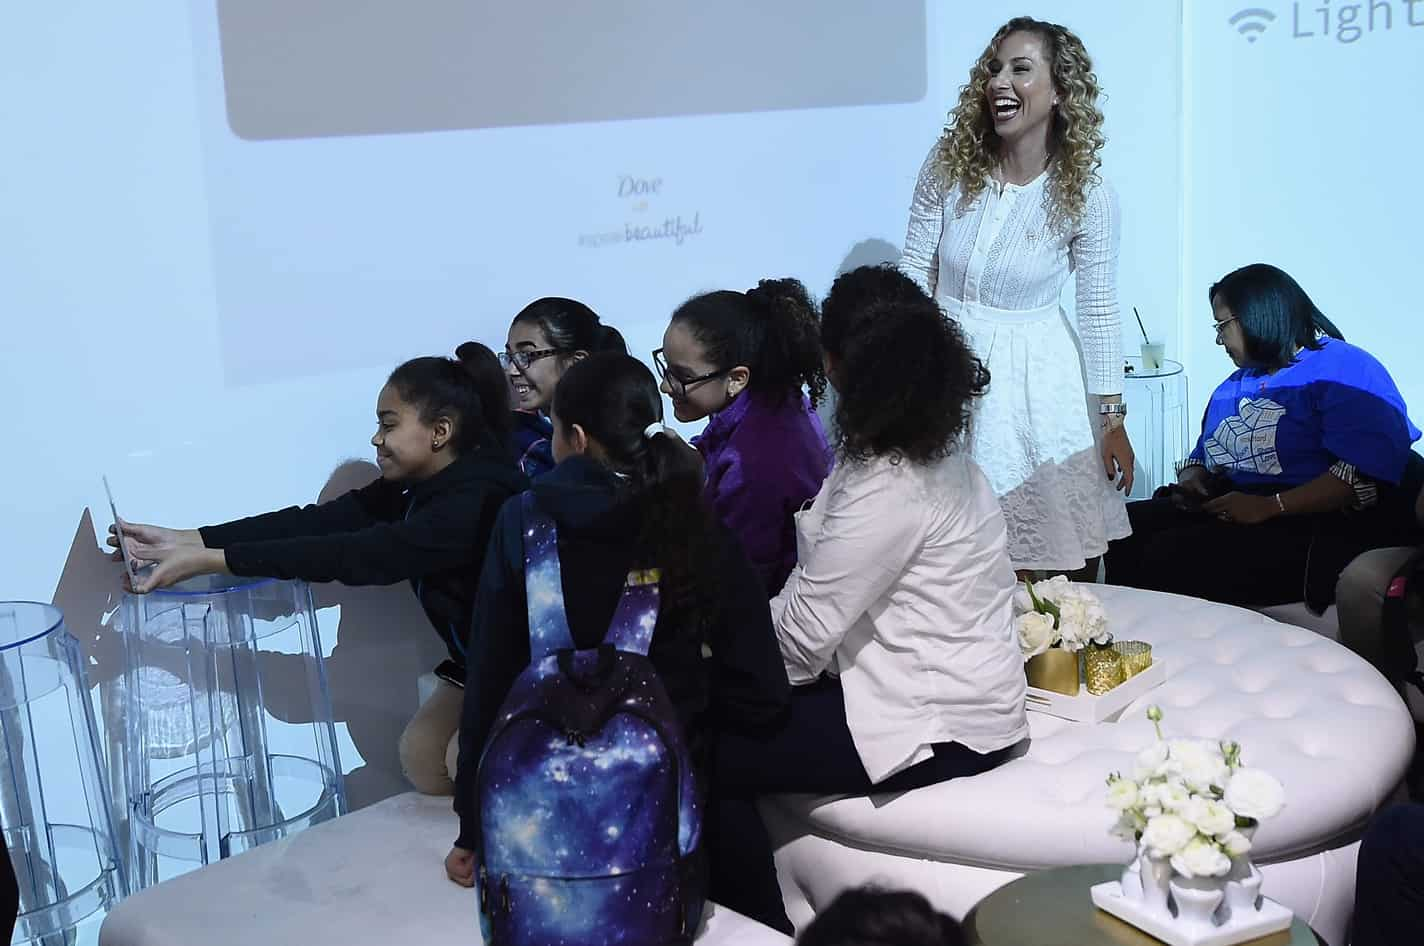 Jeannette Kaplun speaks with girls about body positivity at a Dove Self-Esteem Workshop to encourage girls to #speakbeautiful on October 20, 2016 in New York City. Visit twitter.com/dove to join the movement and help inspire online body positivity and confidence for the next generation. (Photo by Ilya S. Savenok/Getty Images for Dove) *** Local Caption *** Jeannette Kaplun